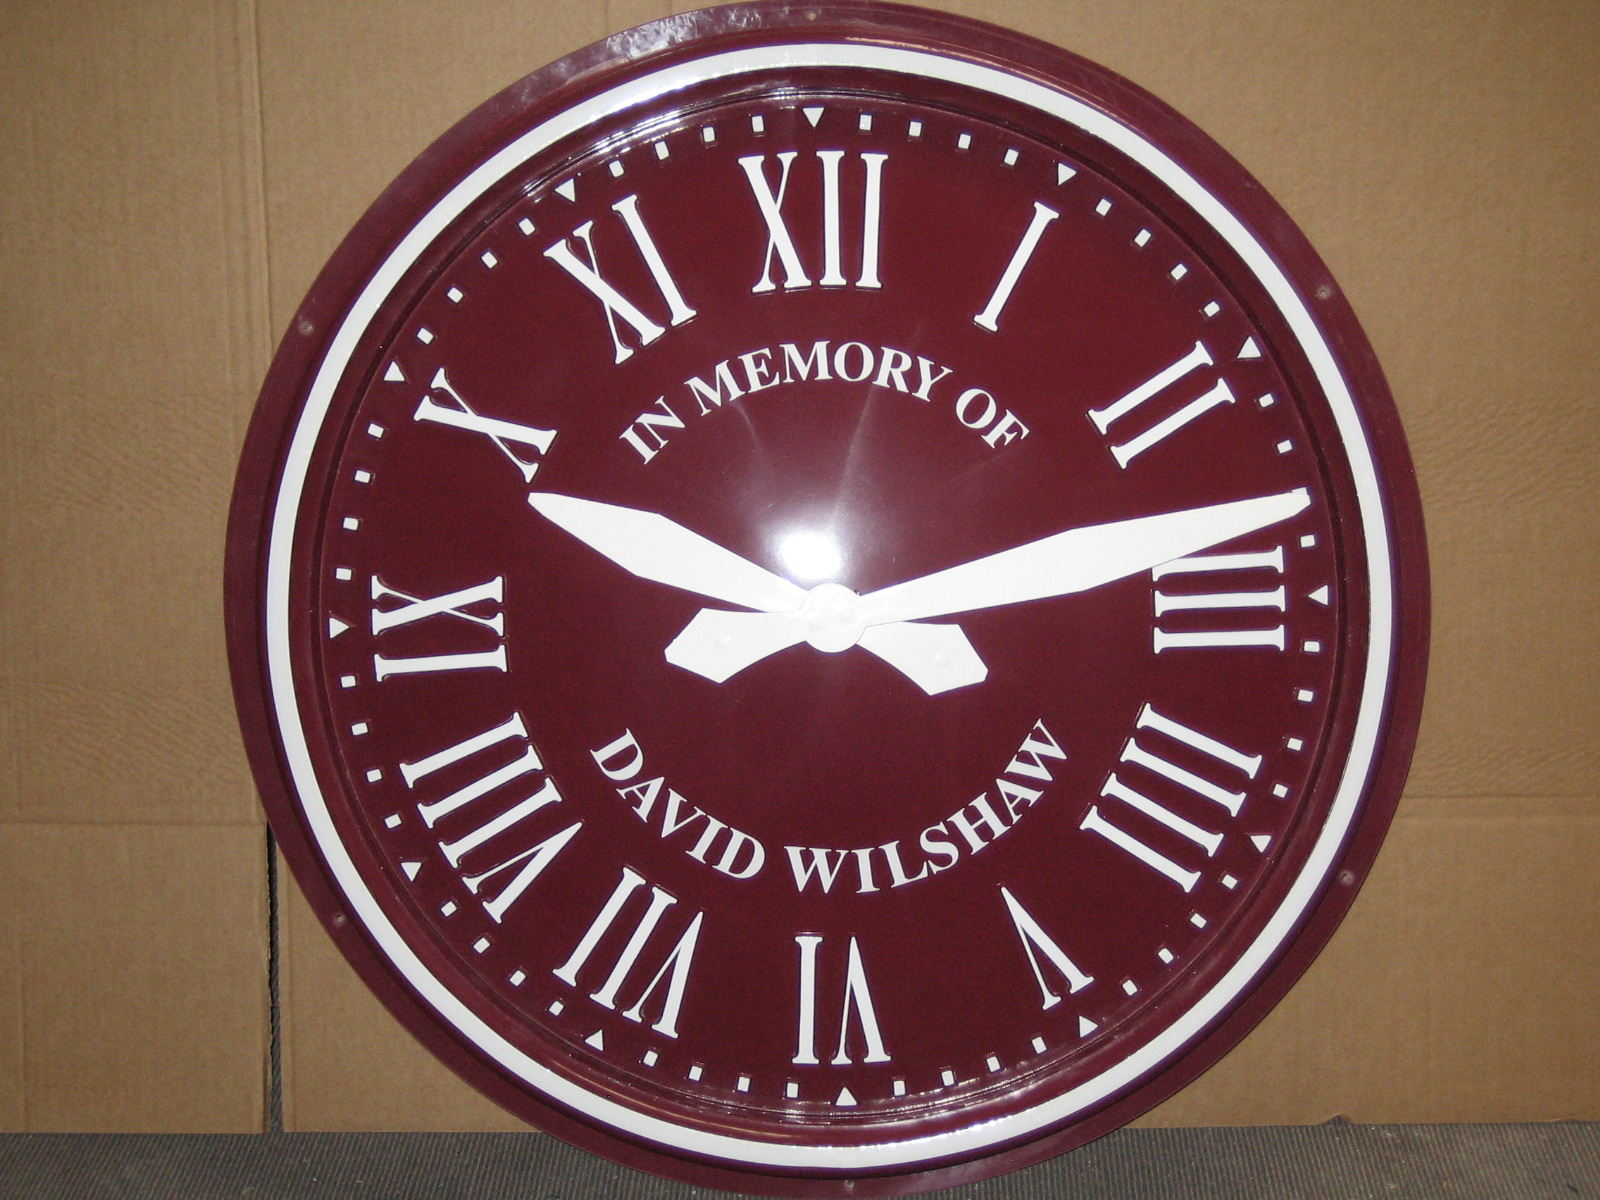 Commemorative Exterior Clock